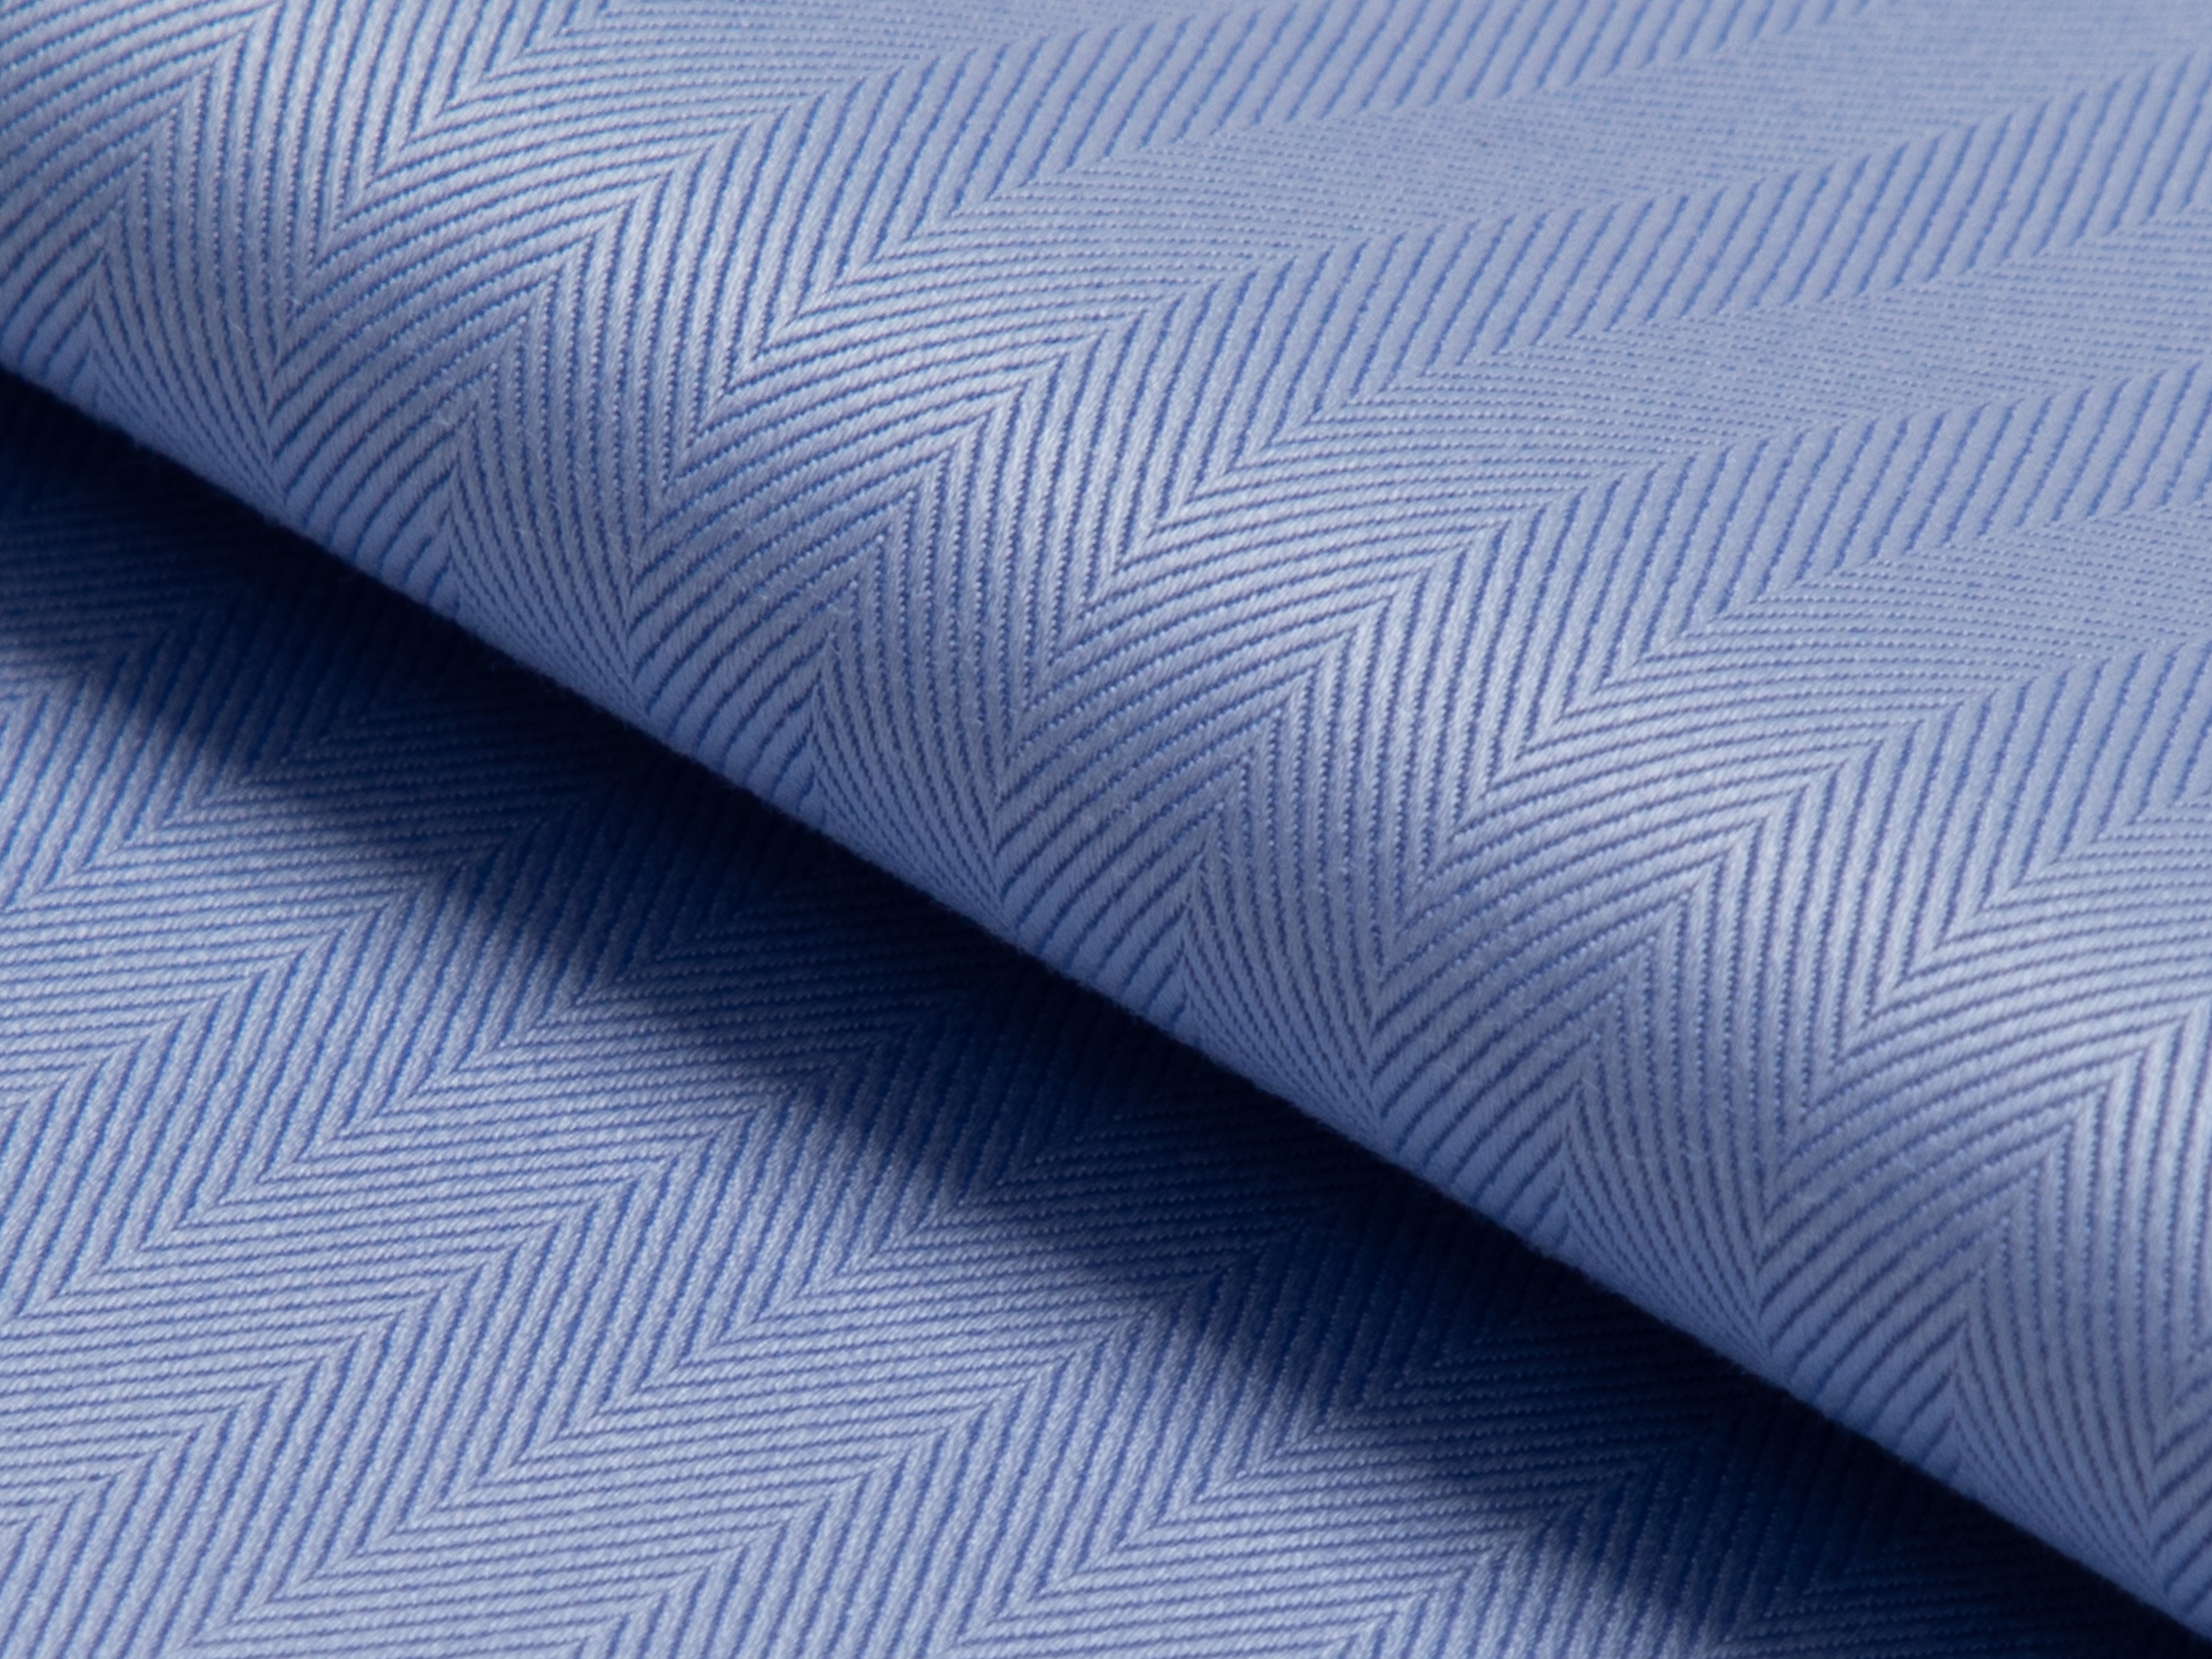 Buy tailor made shirts online - MAYFAIR - Herringbone Blue